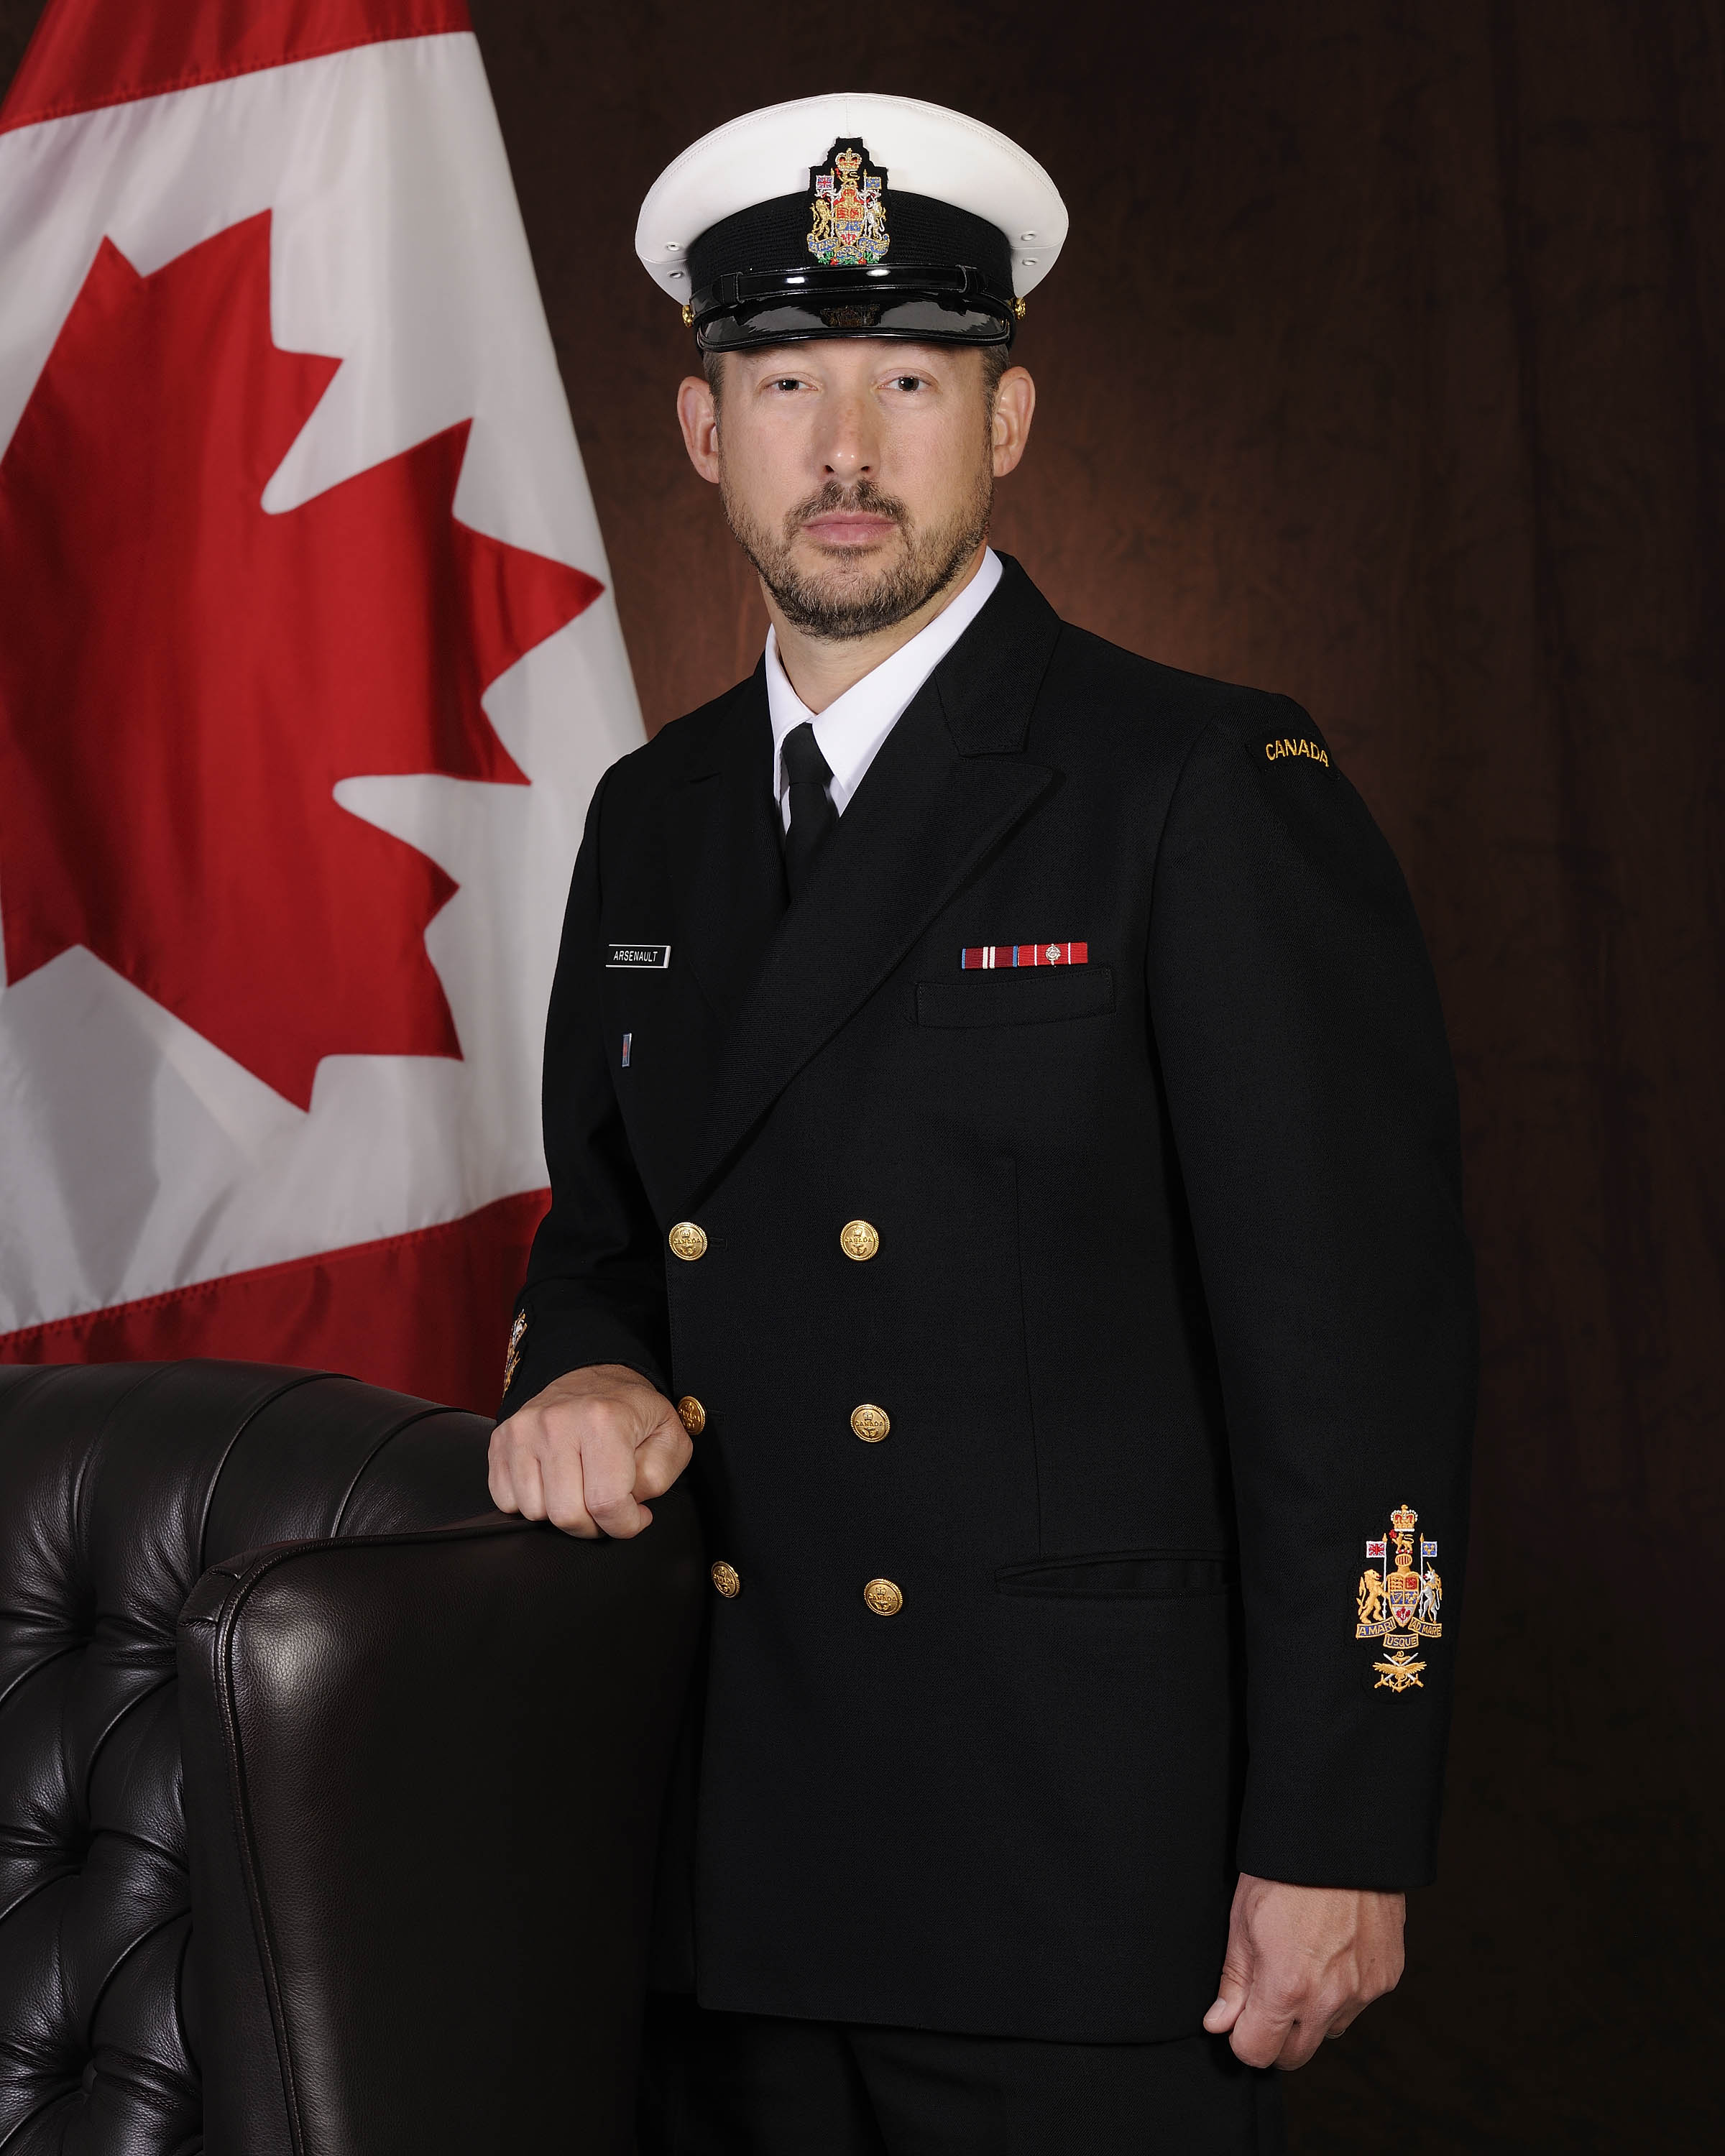 CPO 1 David Arsenault